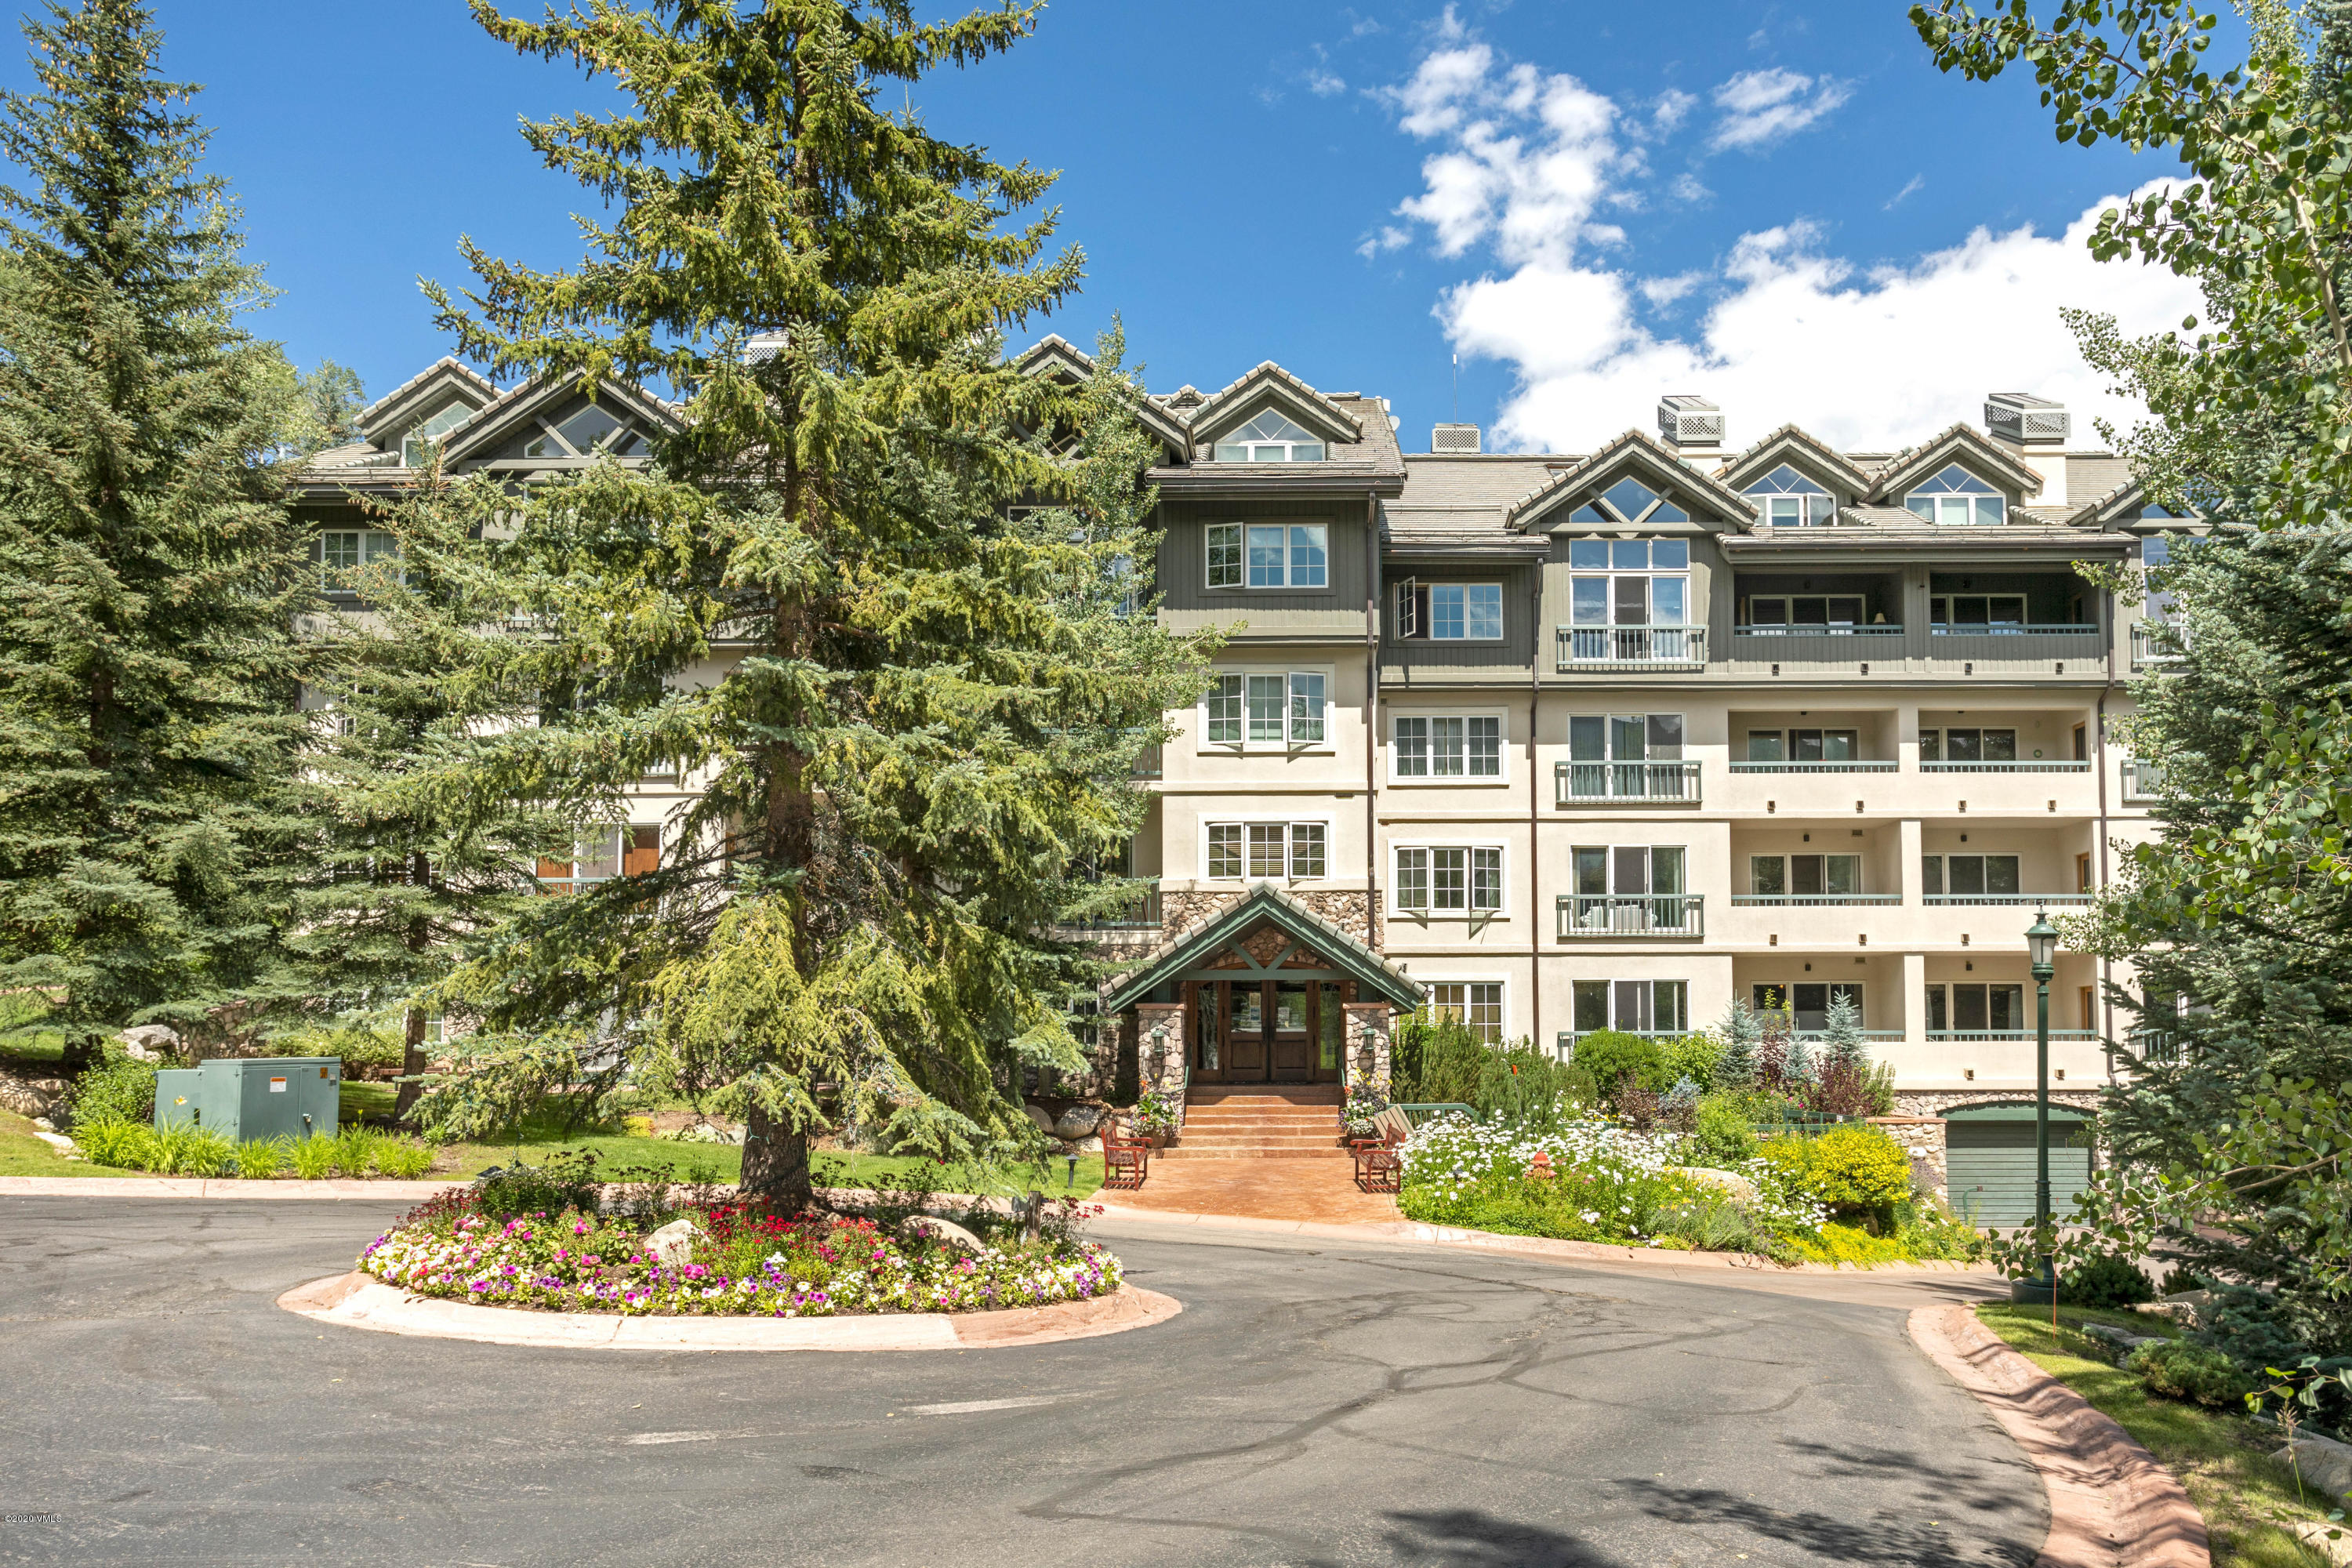 Gorgeous ski slope views from this remodeled single level 3 bedroom ski-in/ski-out residence. This home is an end unit with southern and eastern views and has easy access to the main lodge, outdoor hot tub and the pool area.